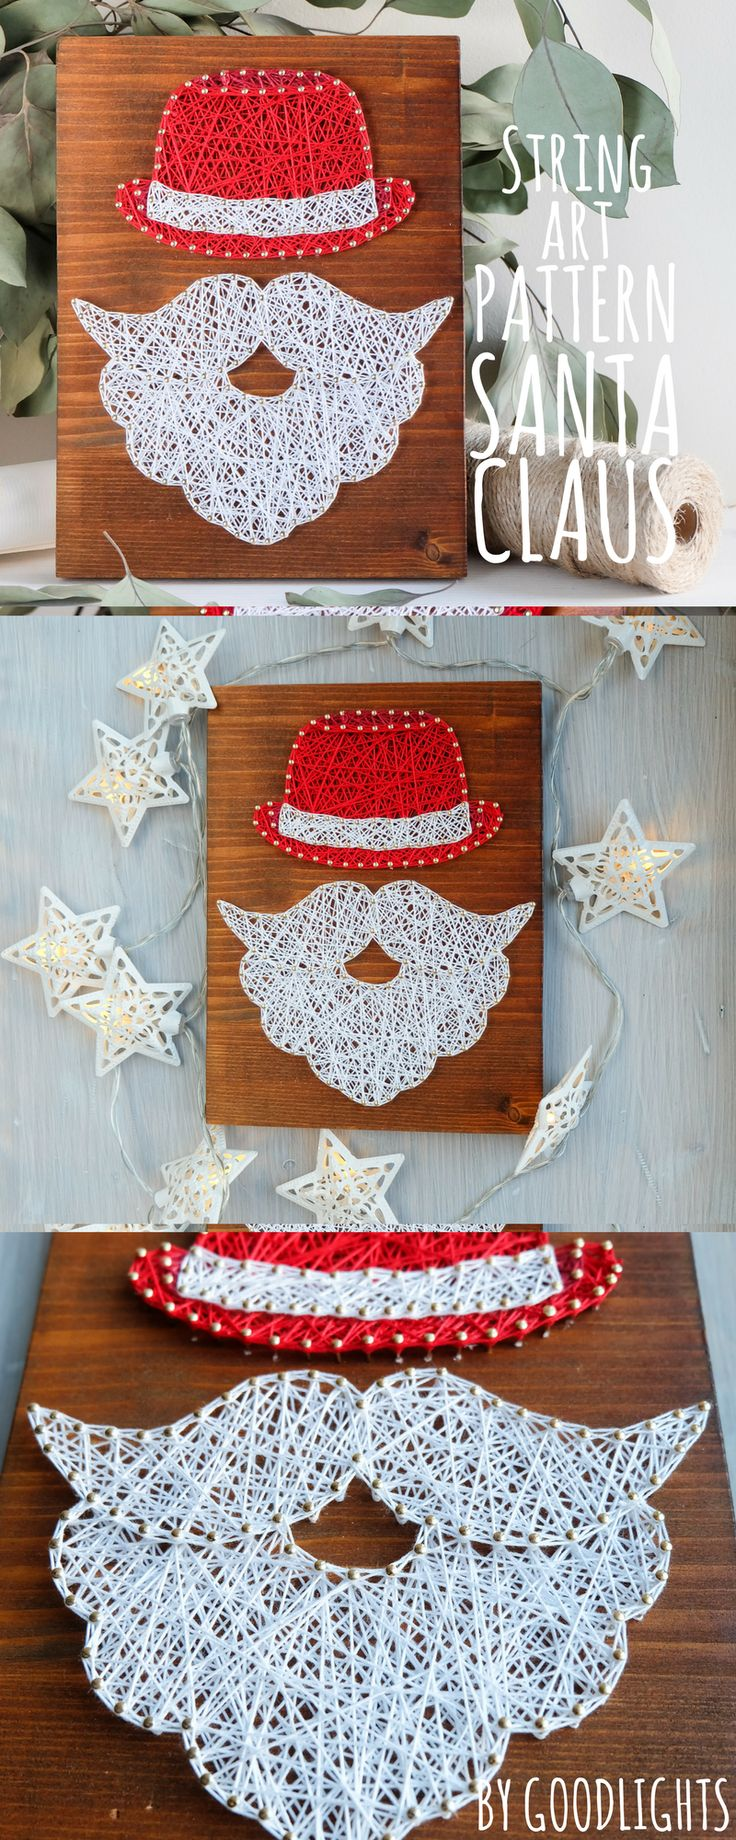 Easter string art pattern printable, Christmas Santa Claus decor DIY template and tutorial, string art craft kit for kids and adults